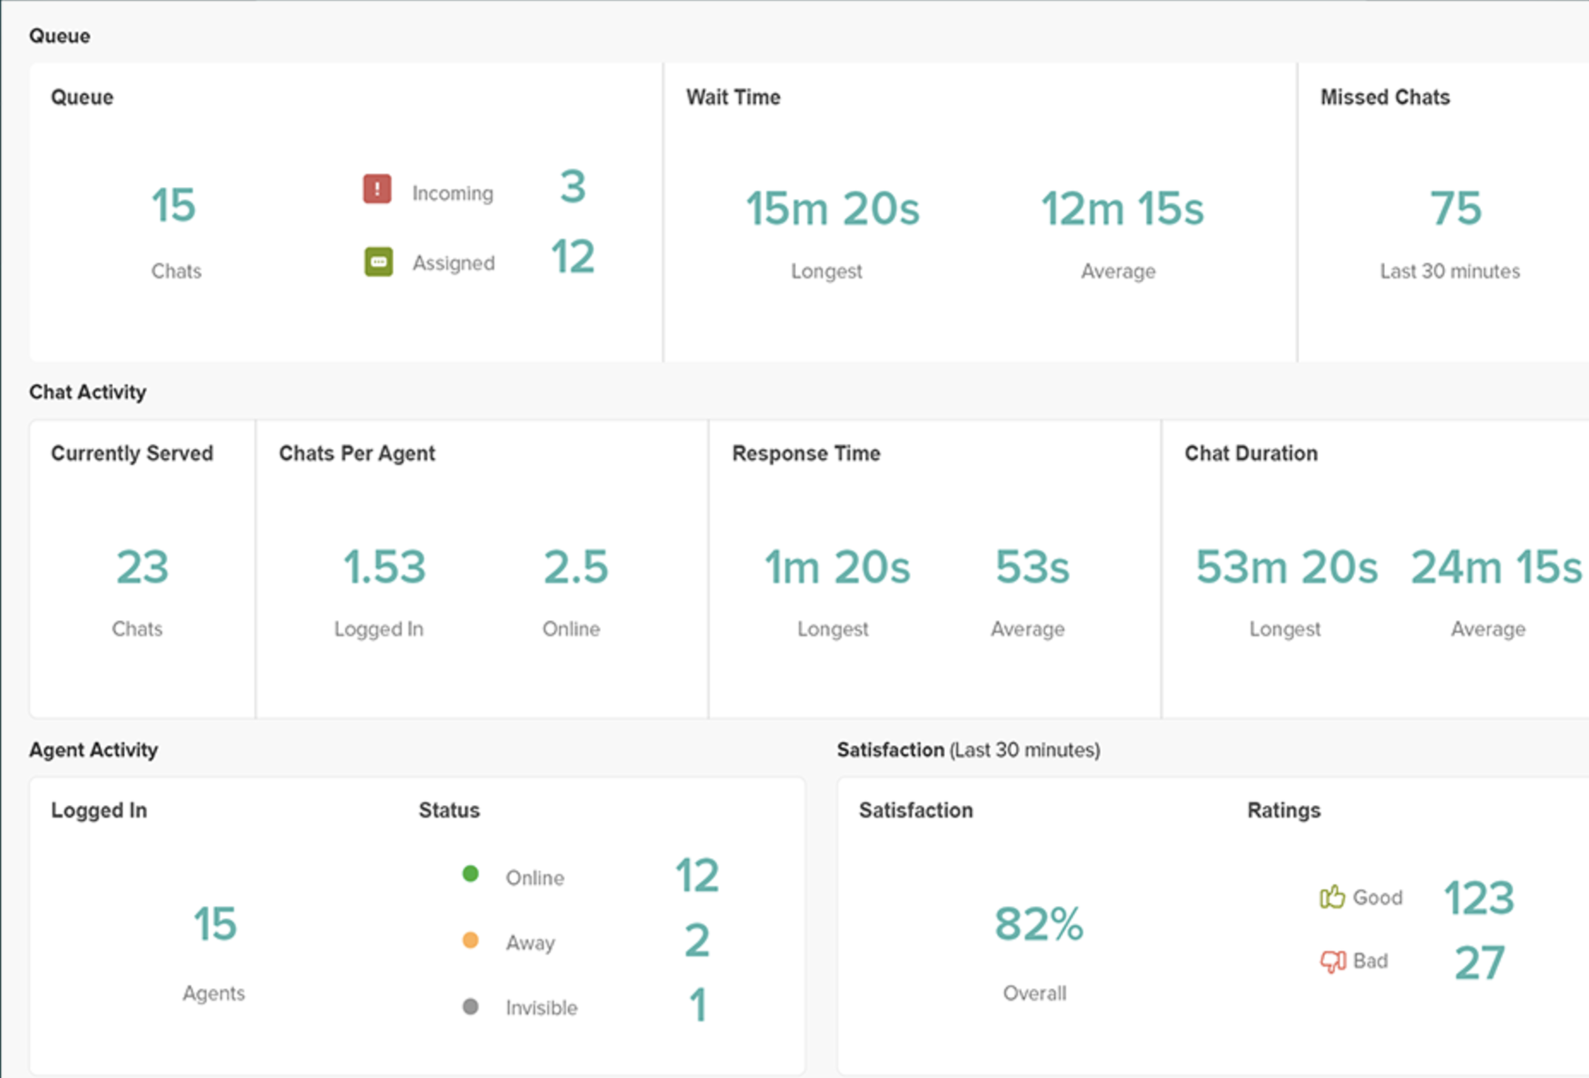 Provides data on overall satisfaction, agent activity, chats in queue, and average response time and chat duration so teams can analyze chat support and success rating